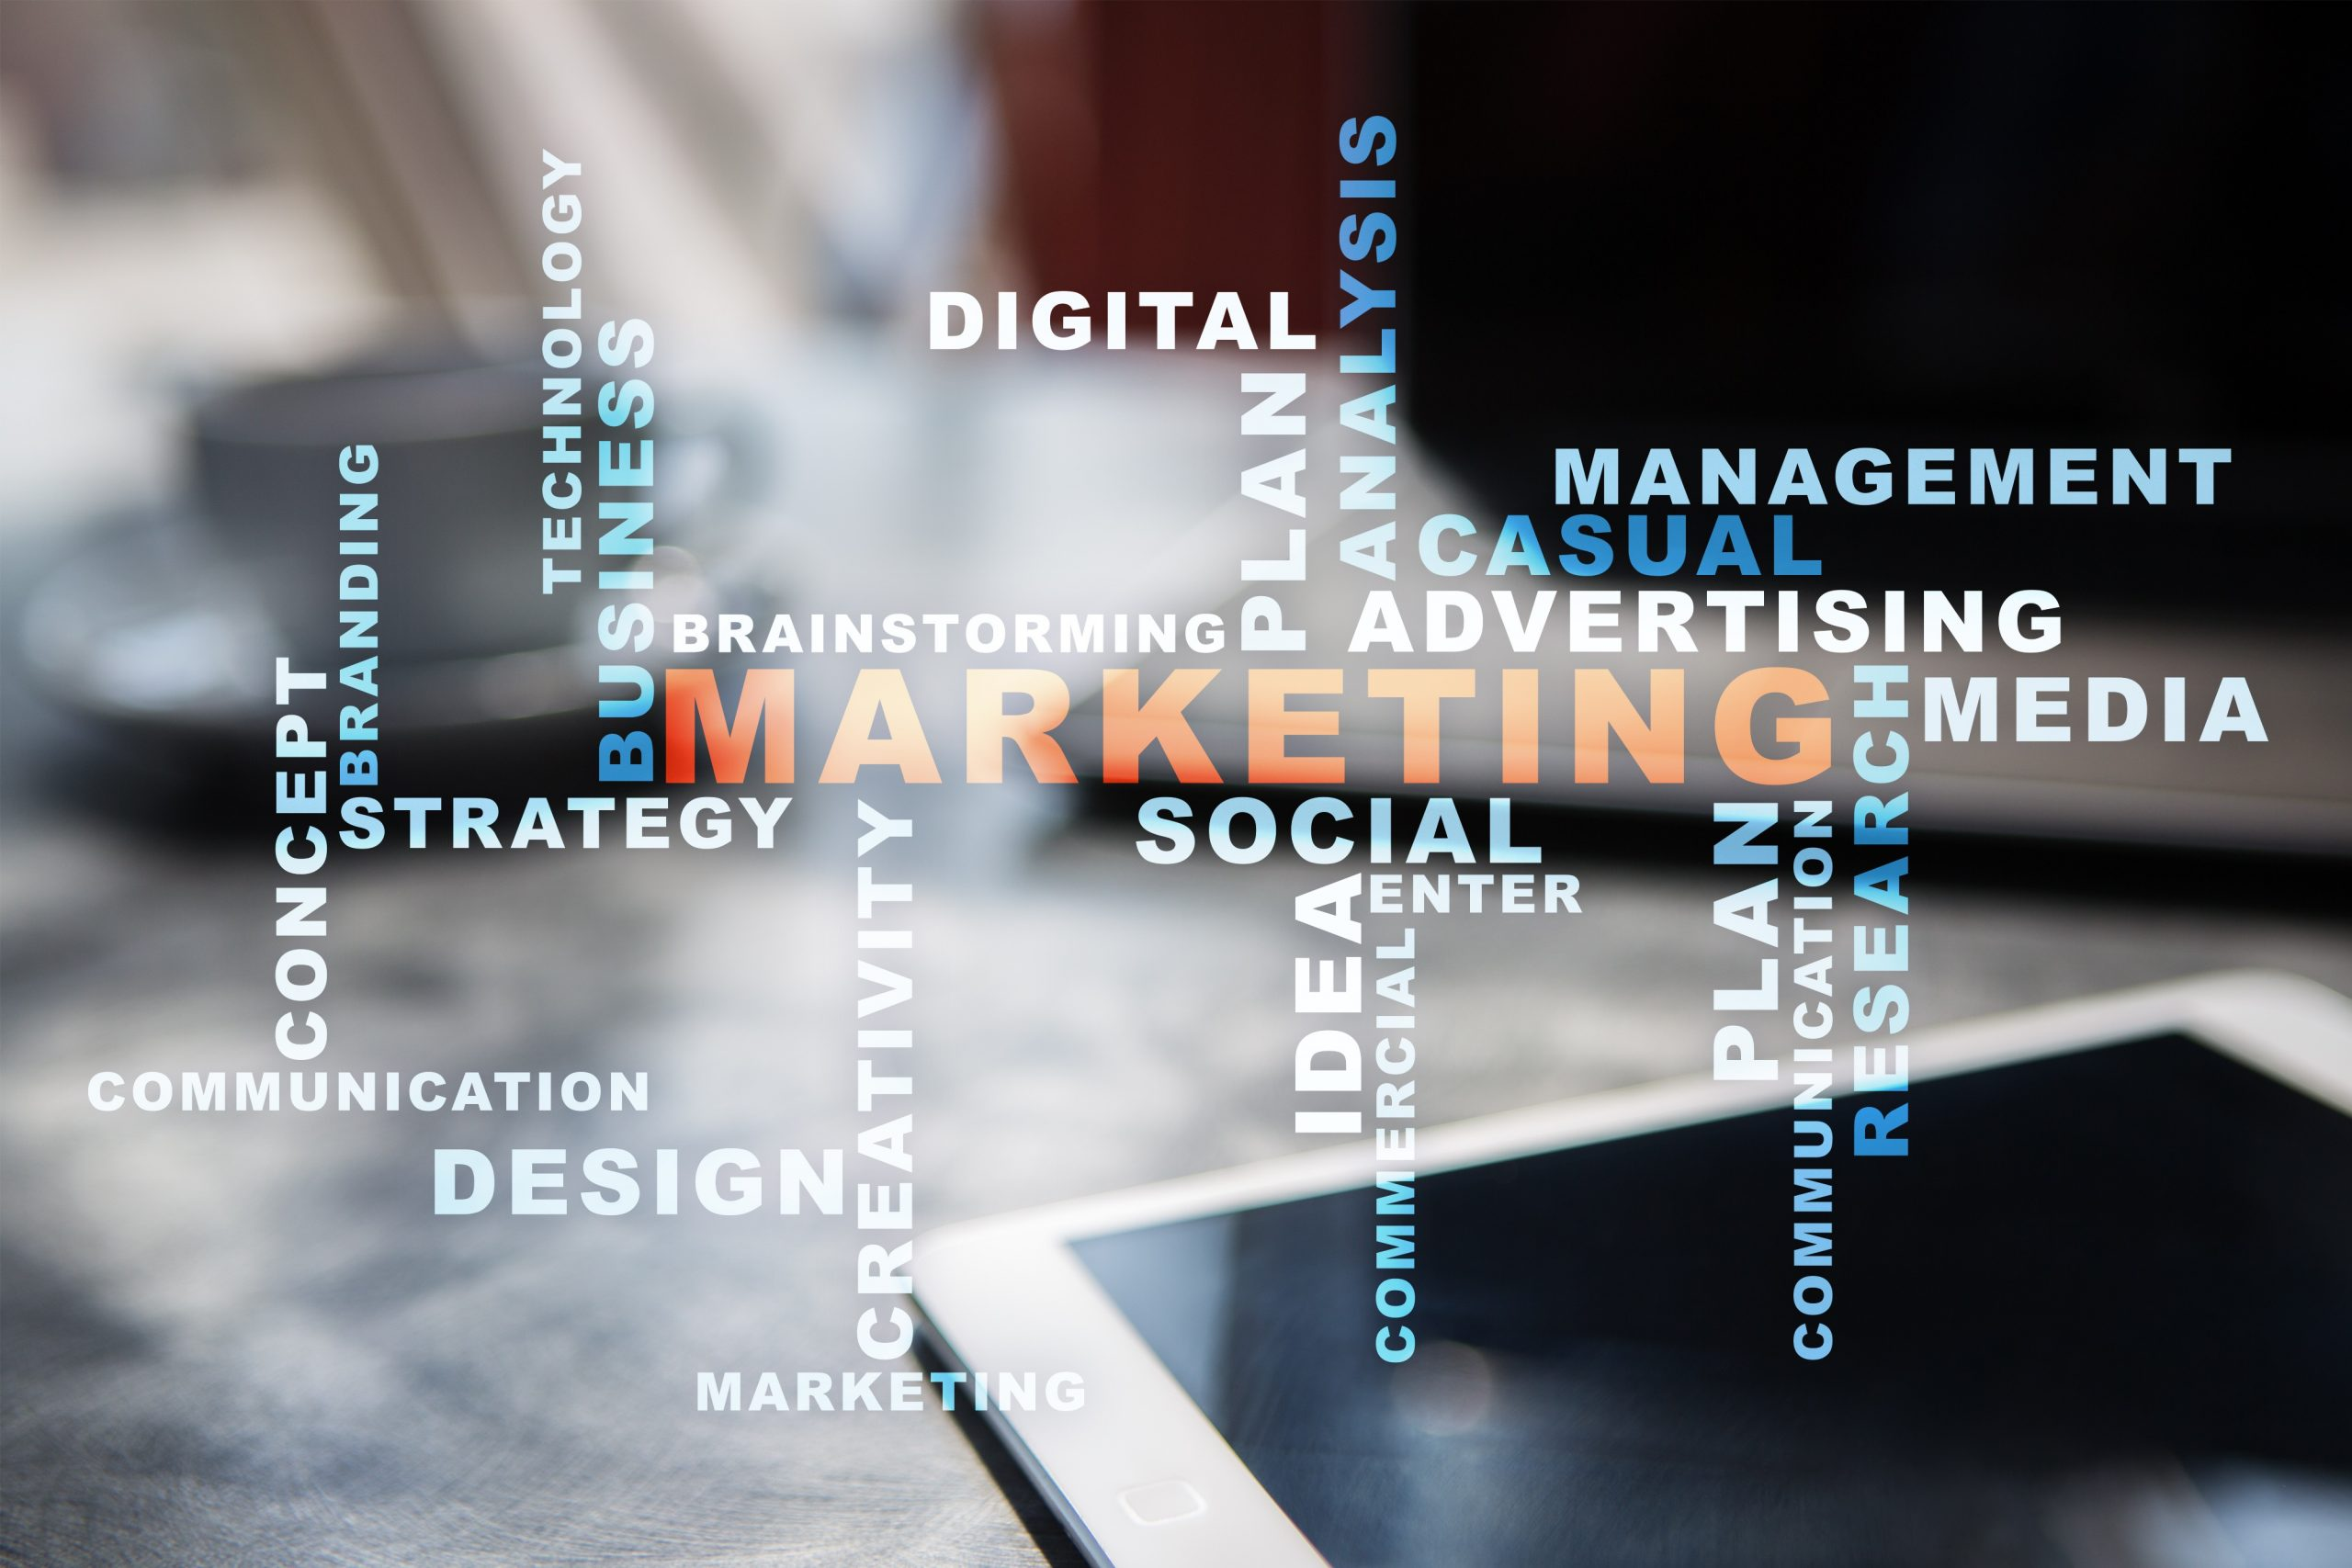 3 Tactics To Better Manage Your Marketing Efforts